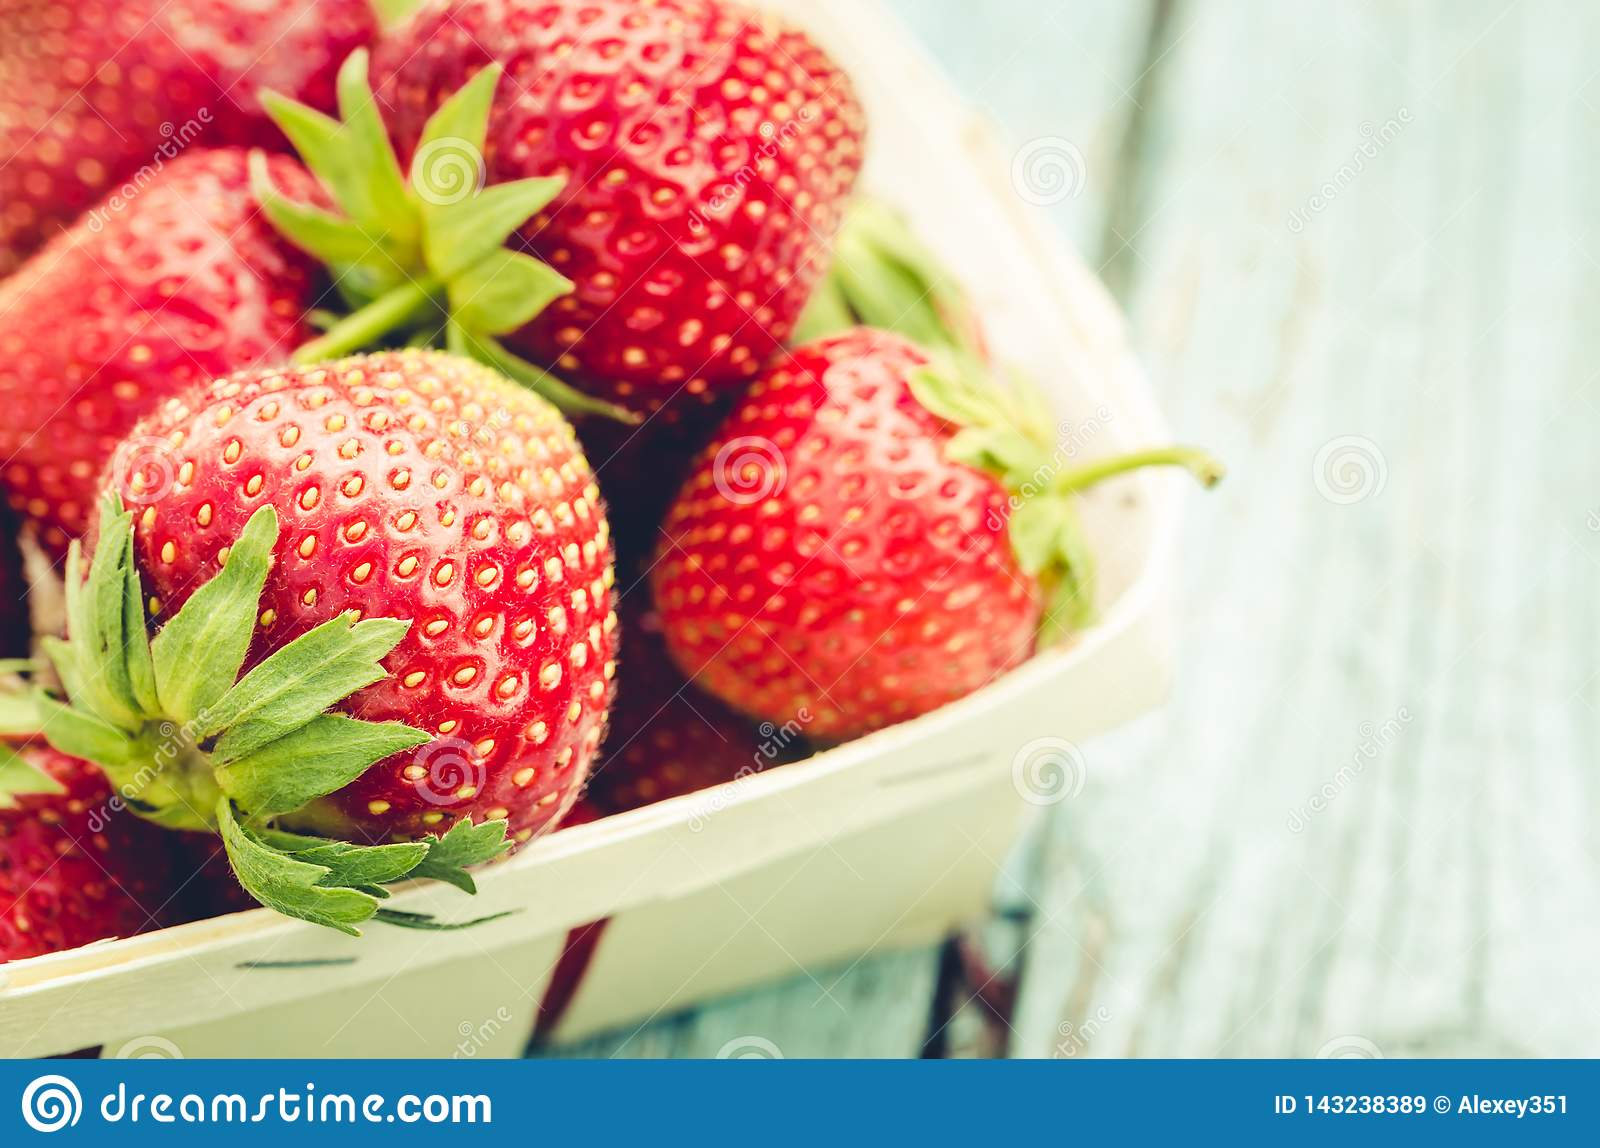 Strawberry. fresh berries of strawberry/Top view. Strawberry in small basket, copy space